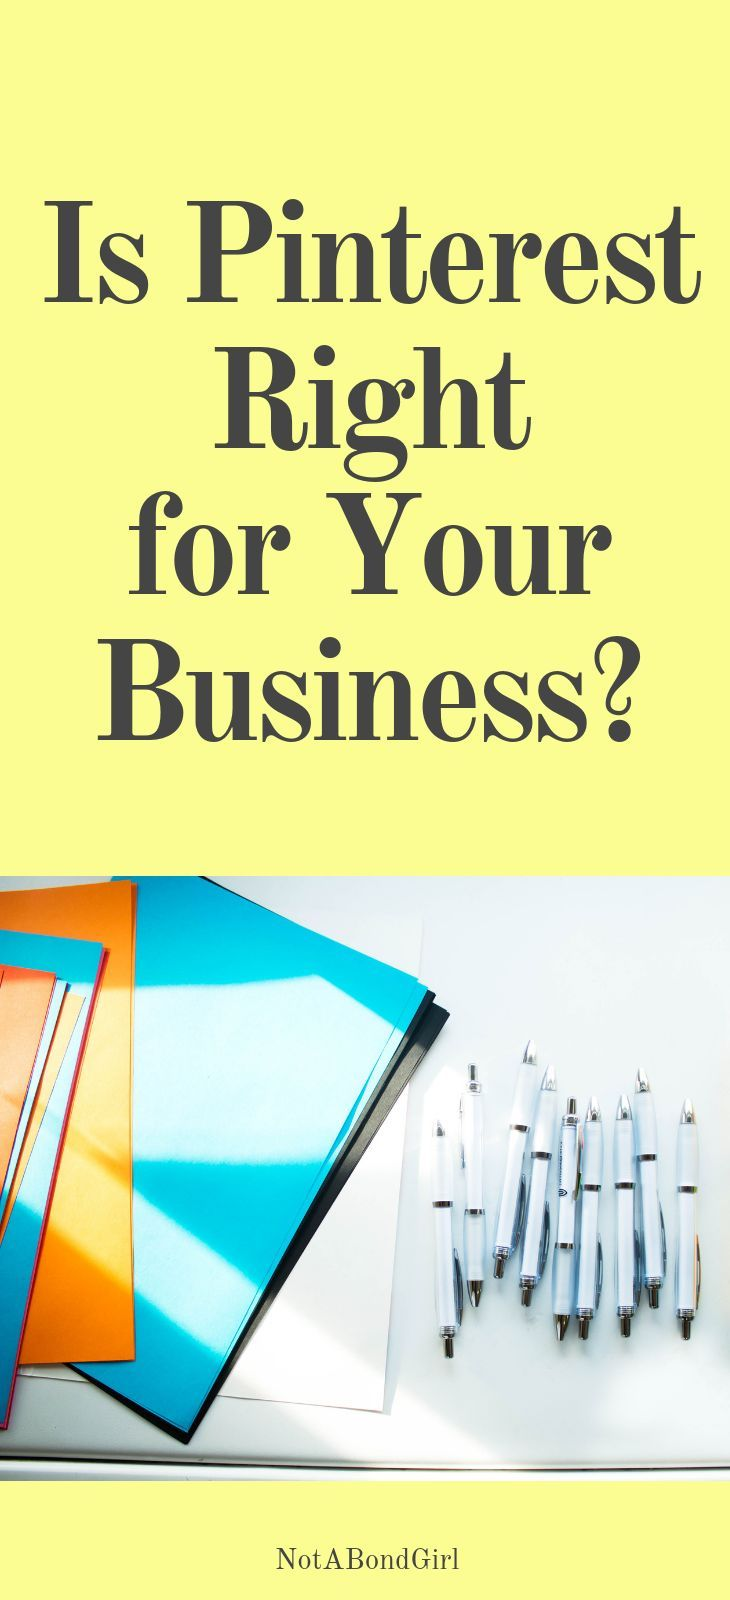 Is Pinterest right for your business